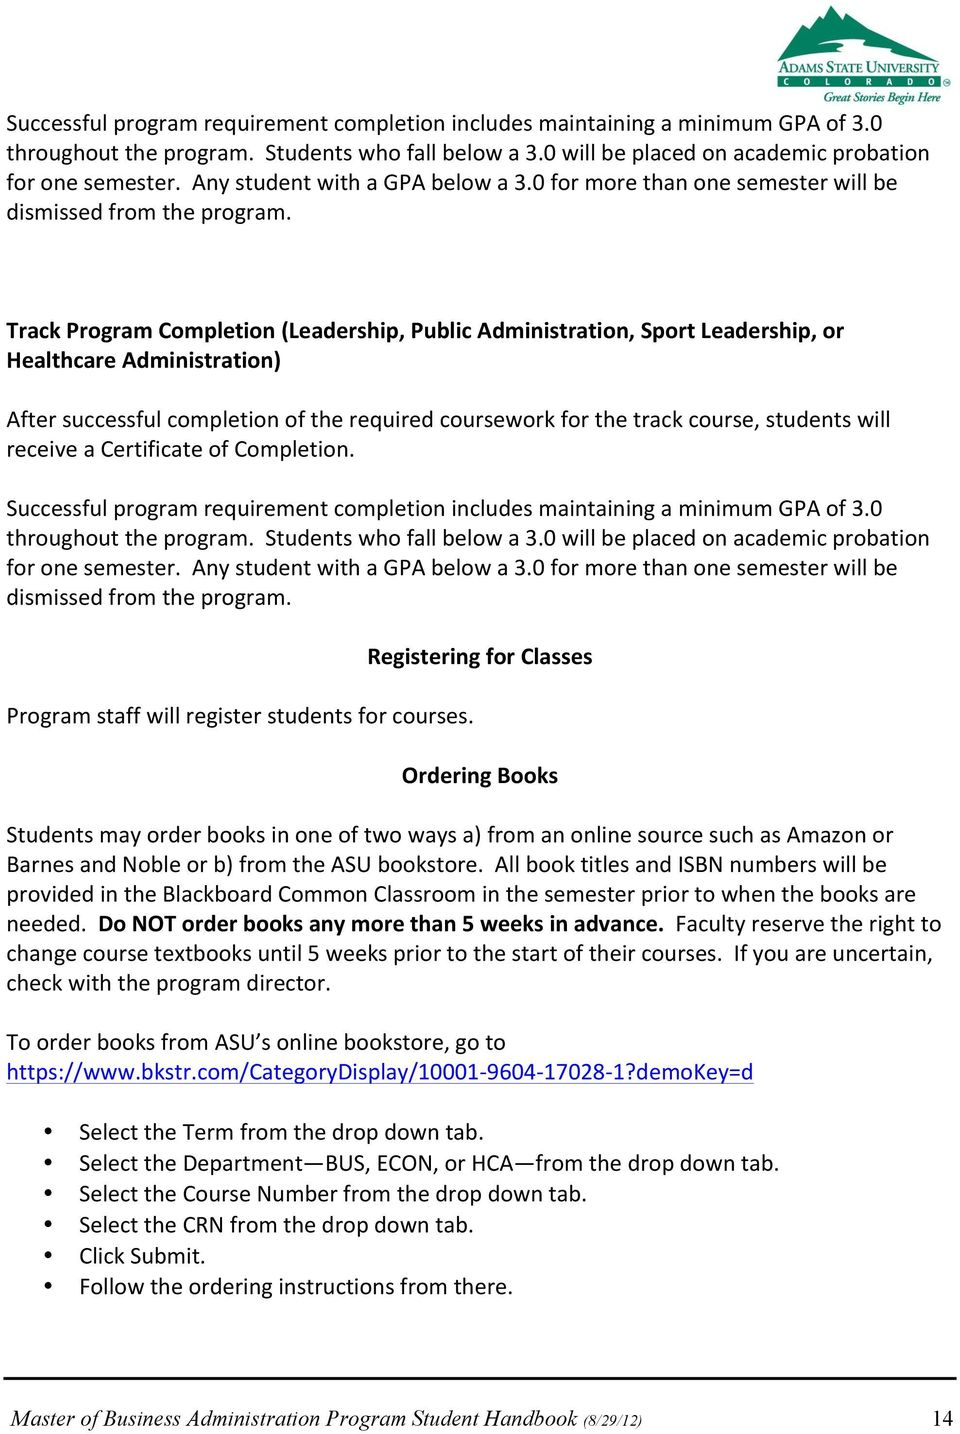 Track Program Completion (Leadership, Public Administration, Sport Leadership, or Healthcare Administration) After successful completion of the required coursework for the track course, students will